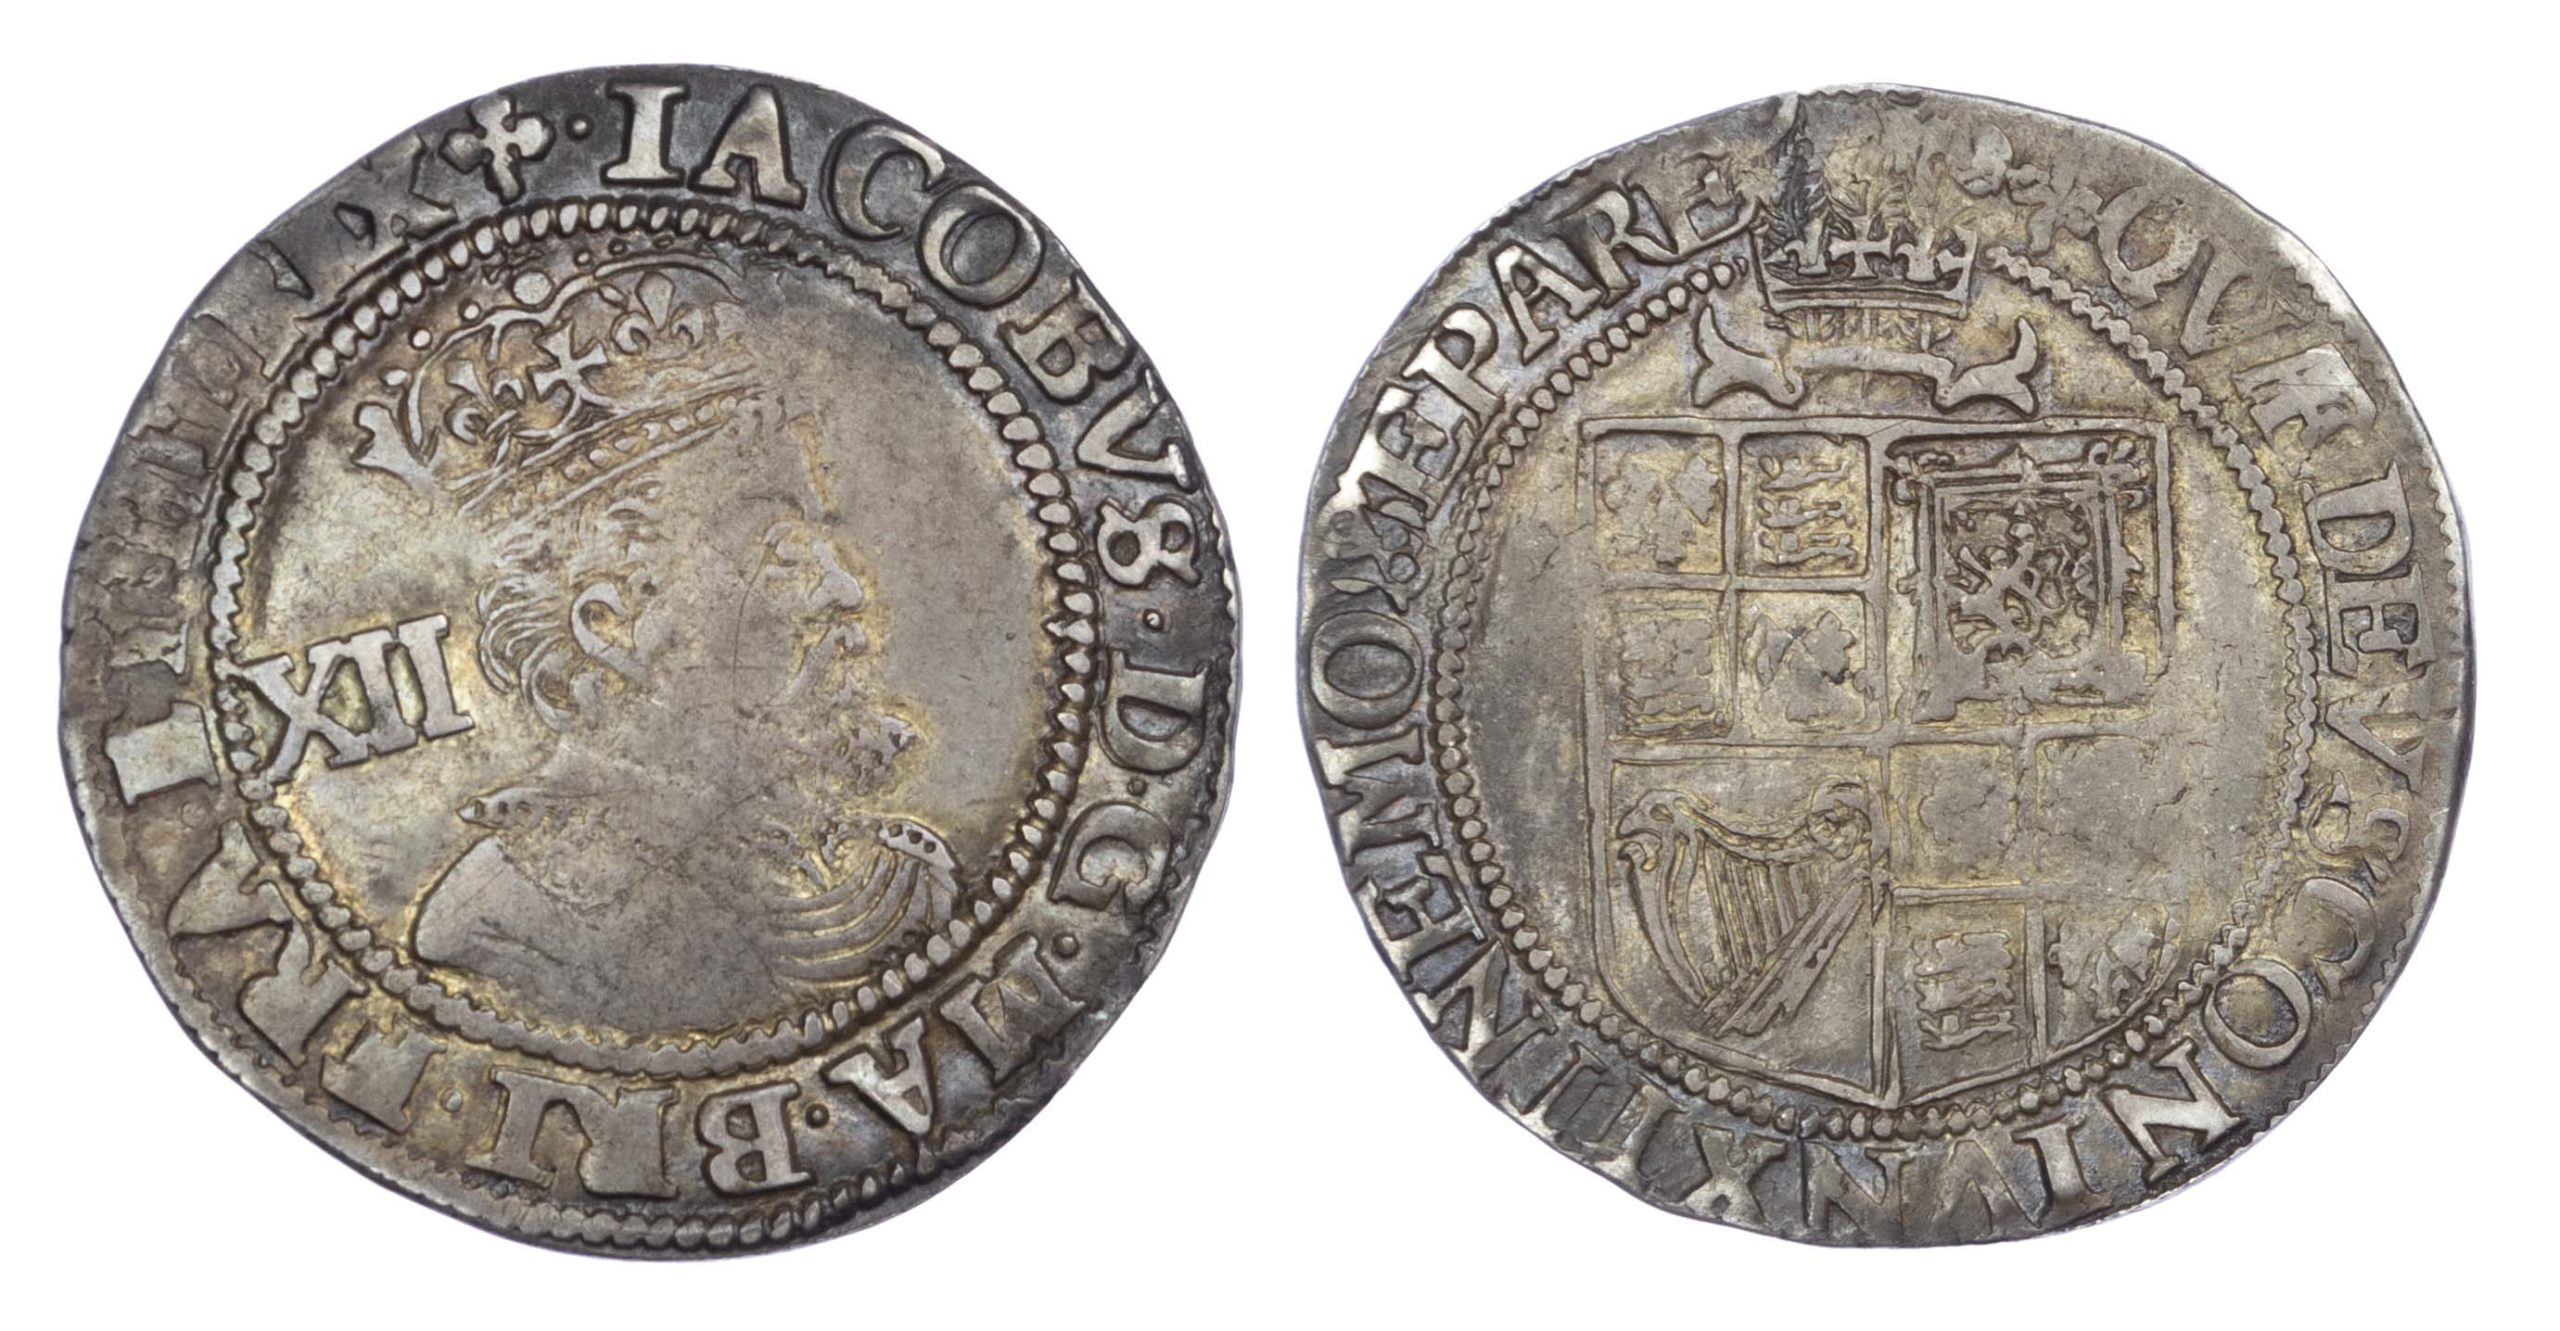 James I (1603-25), Shilling, third coinage, mintmark trefoil